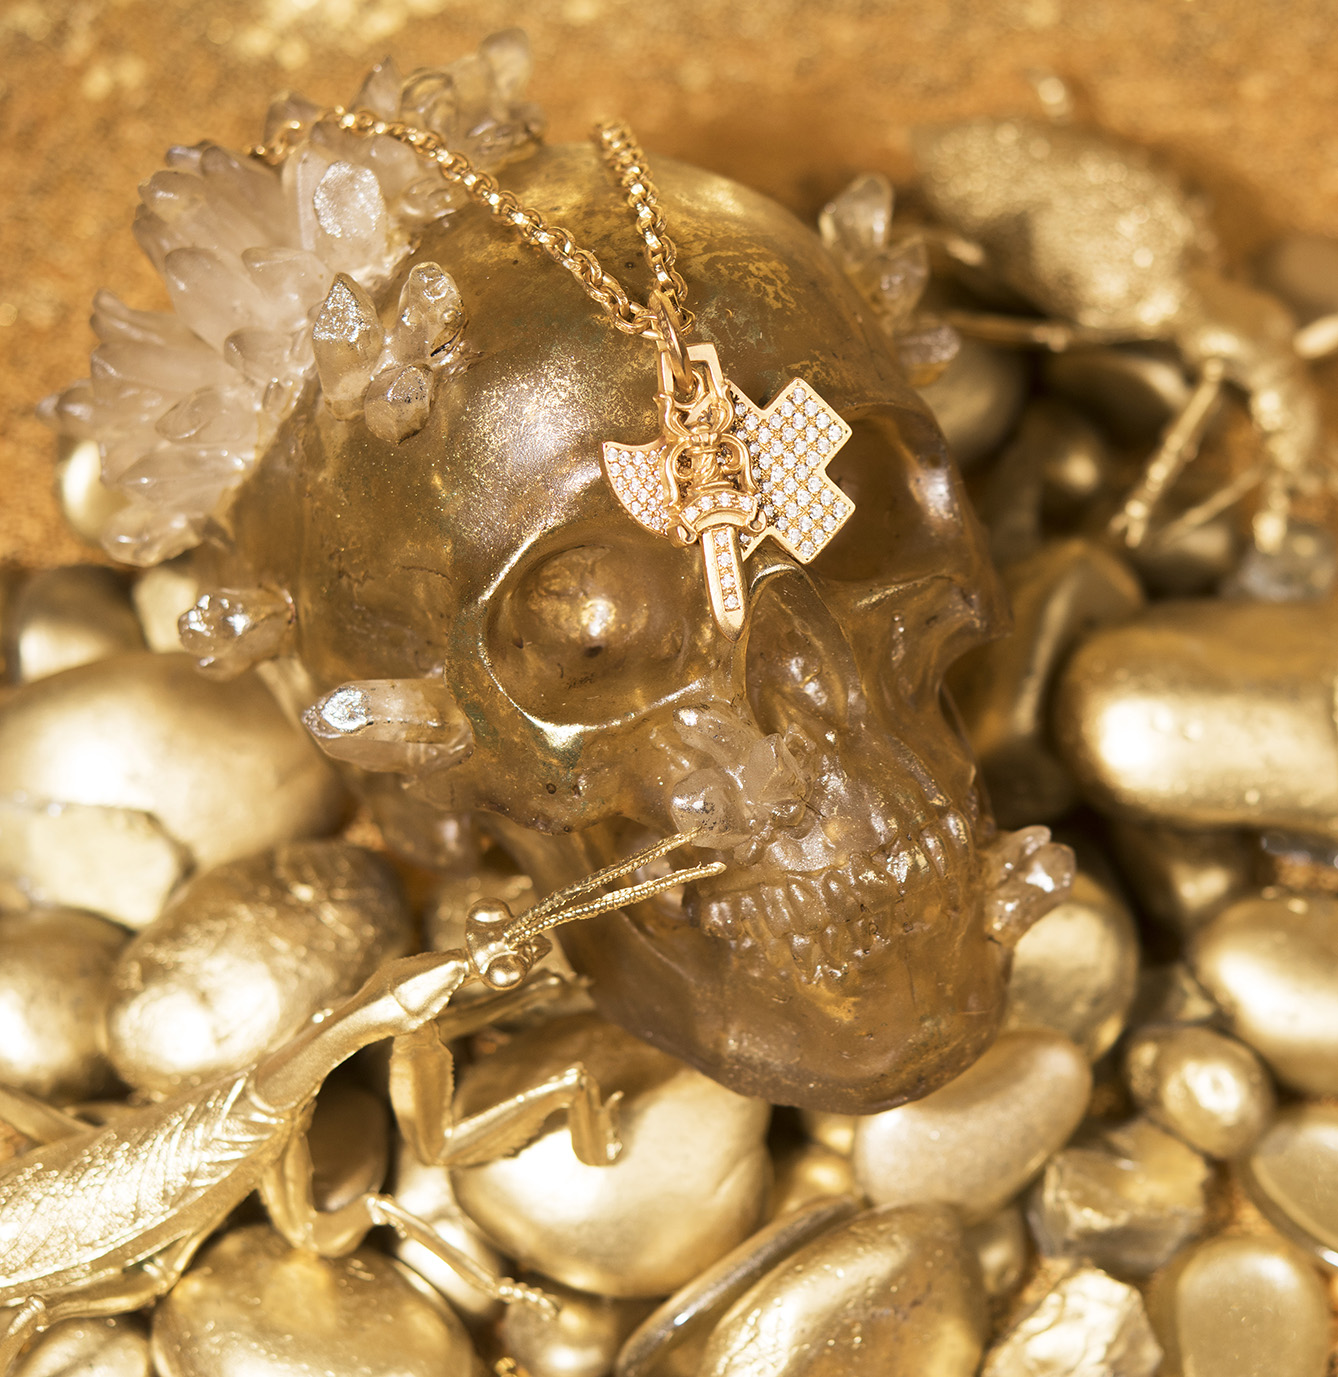 CHROME HEARTS 22k Yellow Gold Diamond Dagger and Charms, and Chain